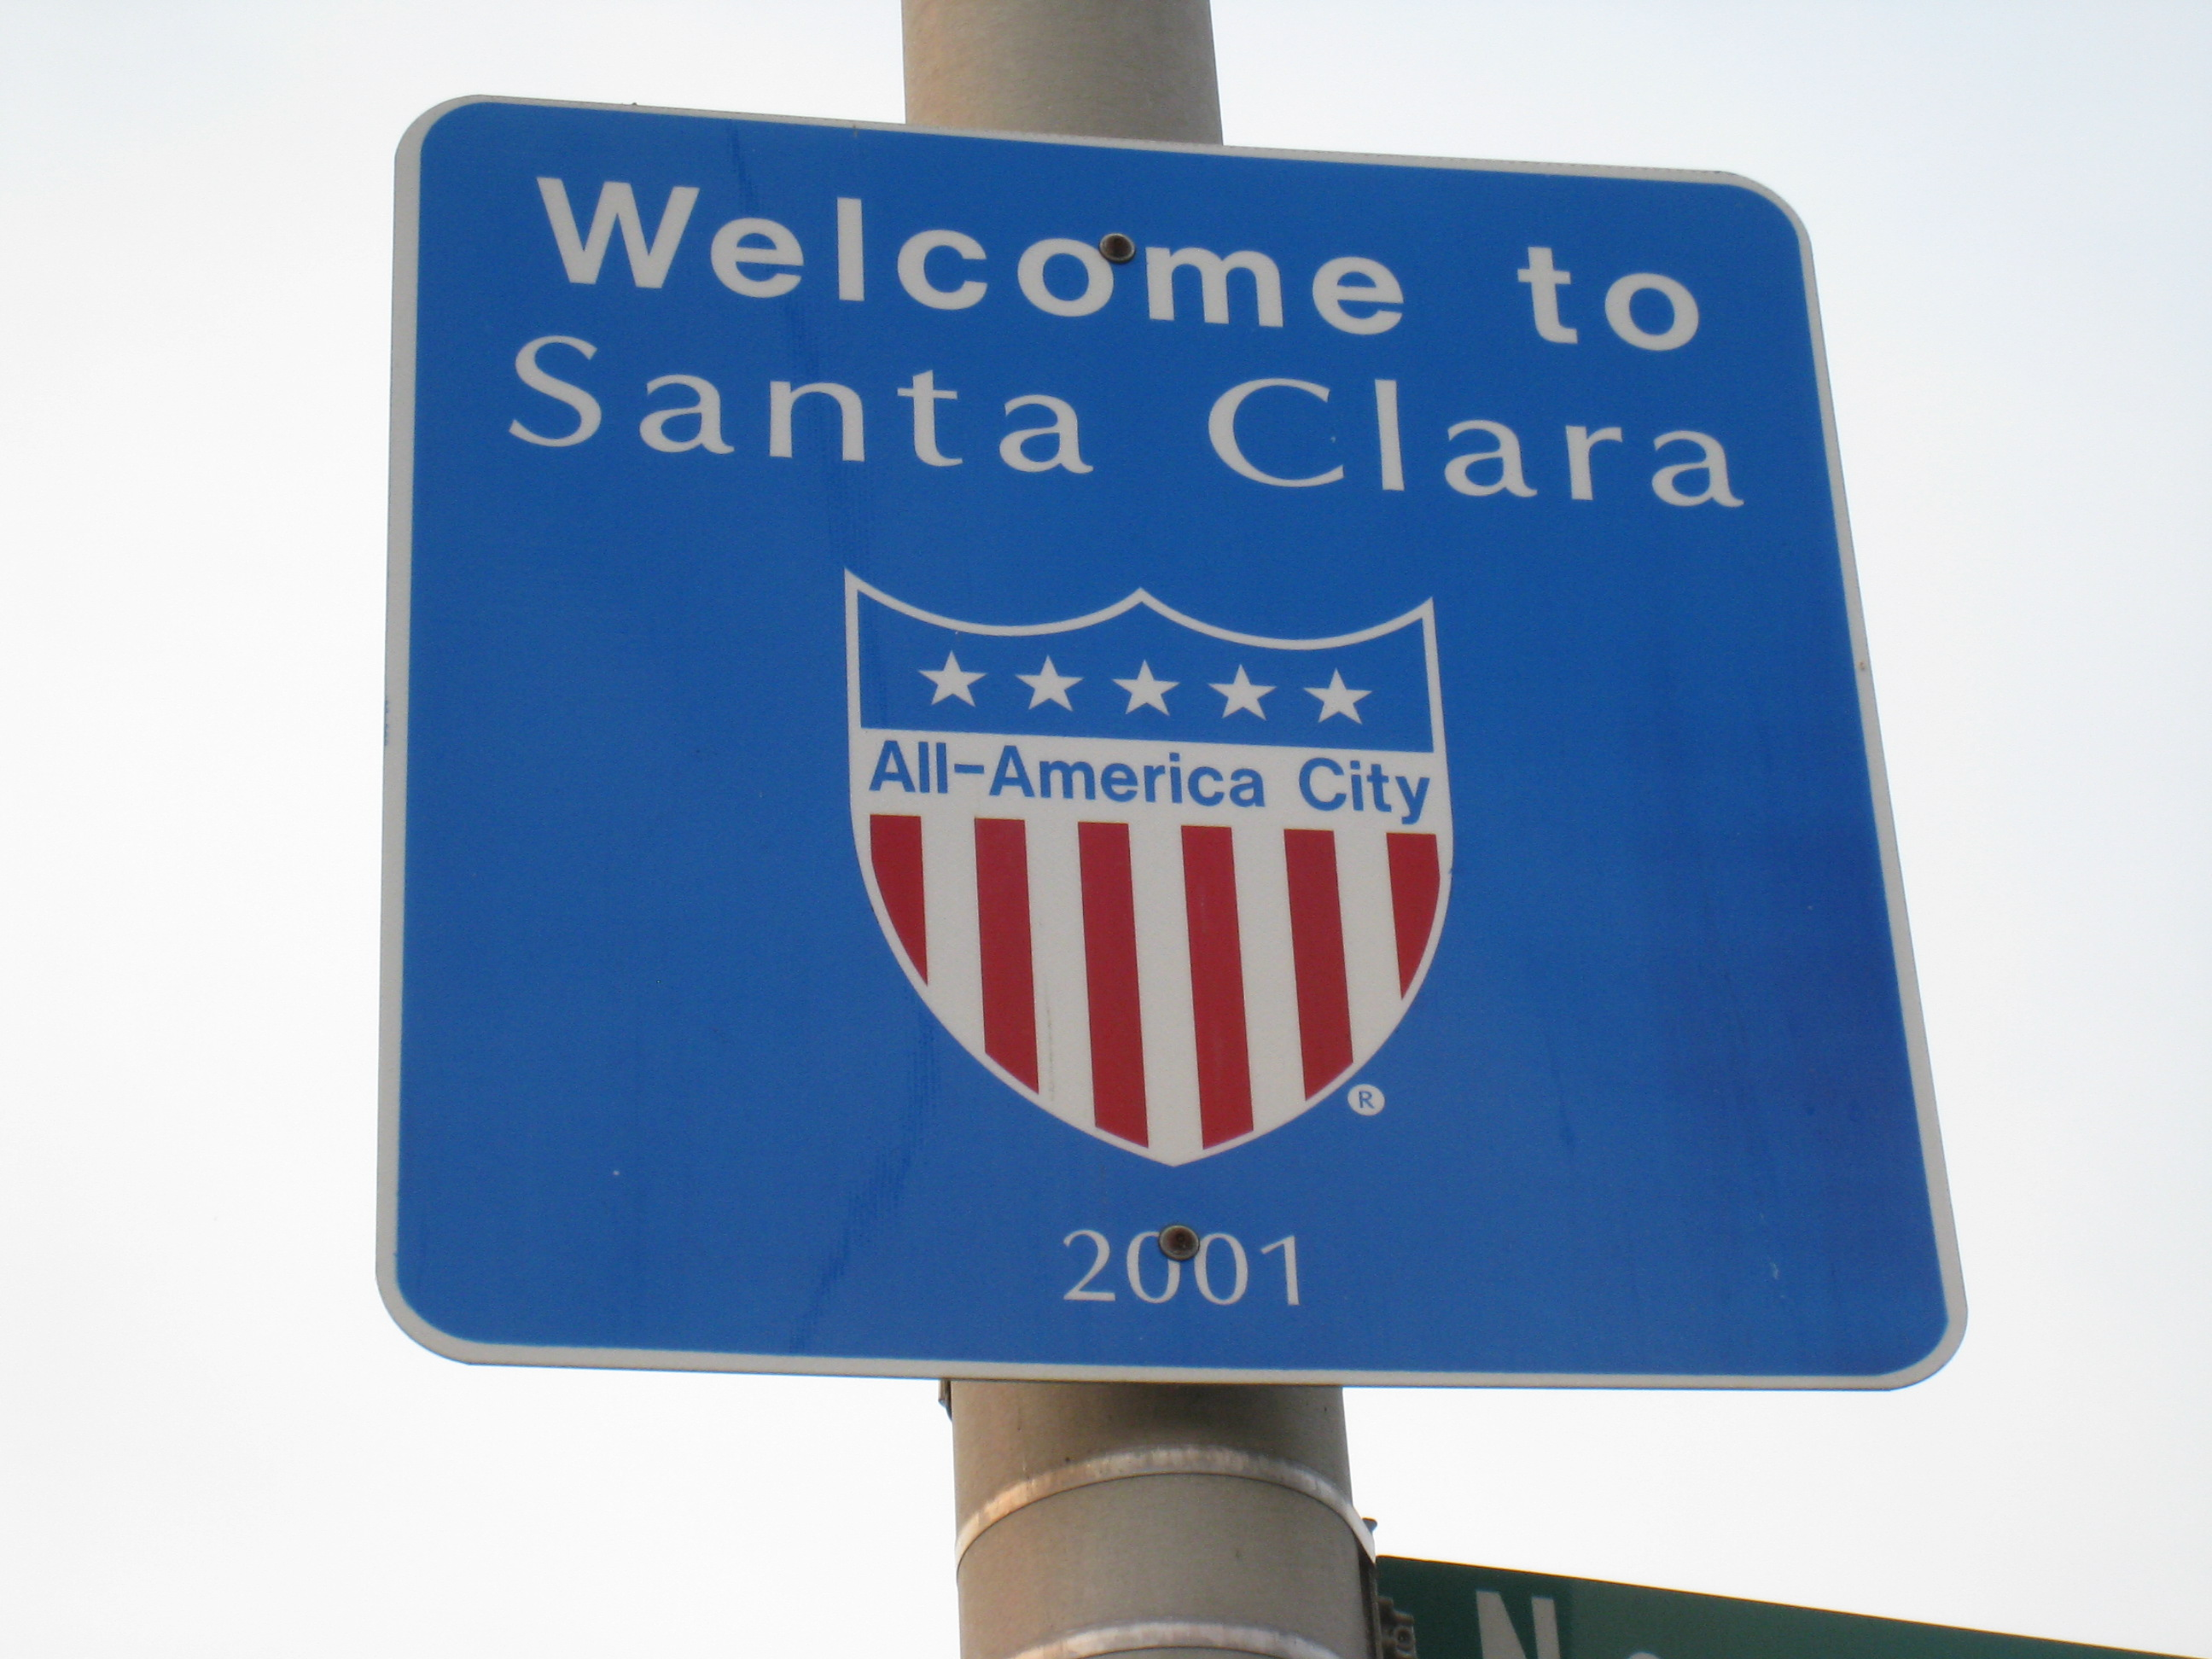 City of Santa Clara CA